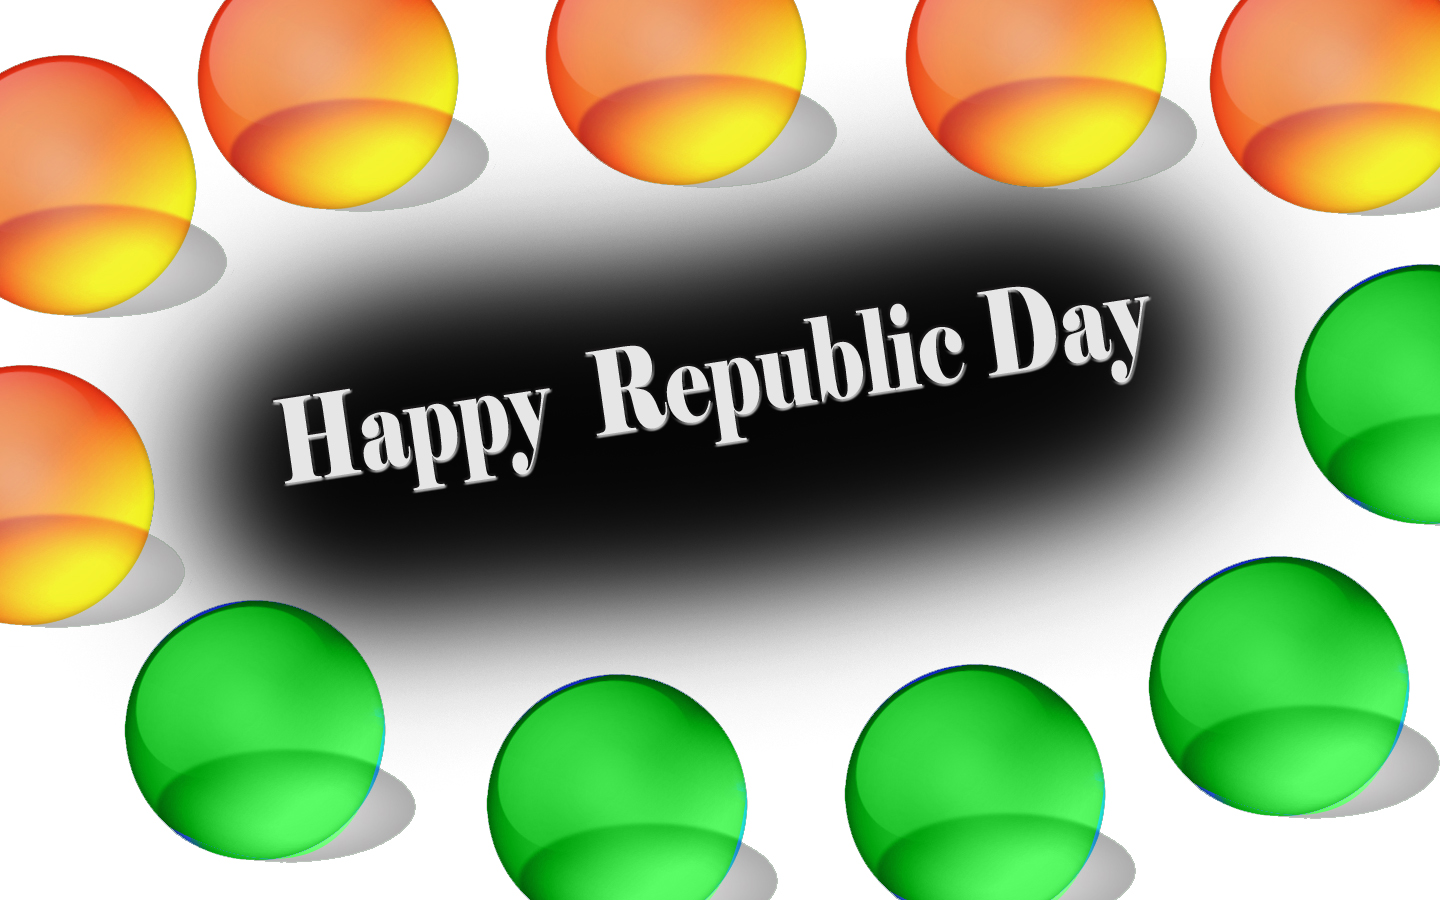 Happy Republic Day Wishes Wallpapers And Greeting Cards